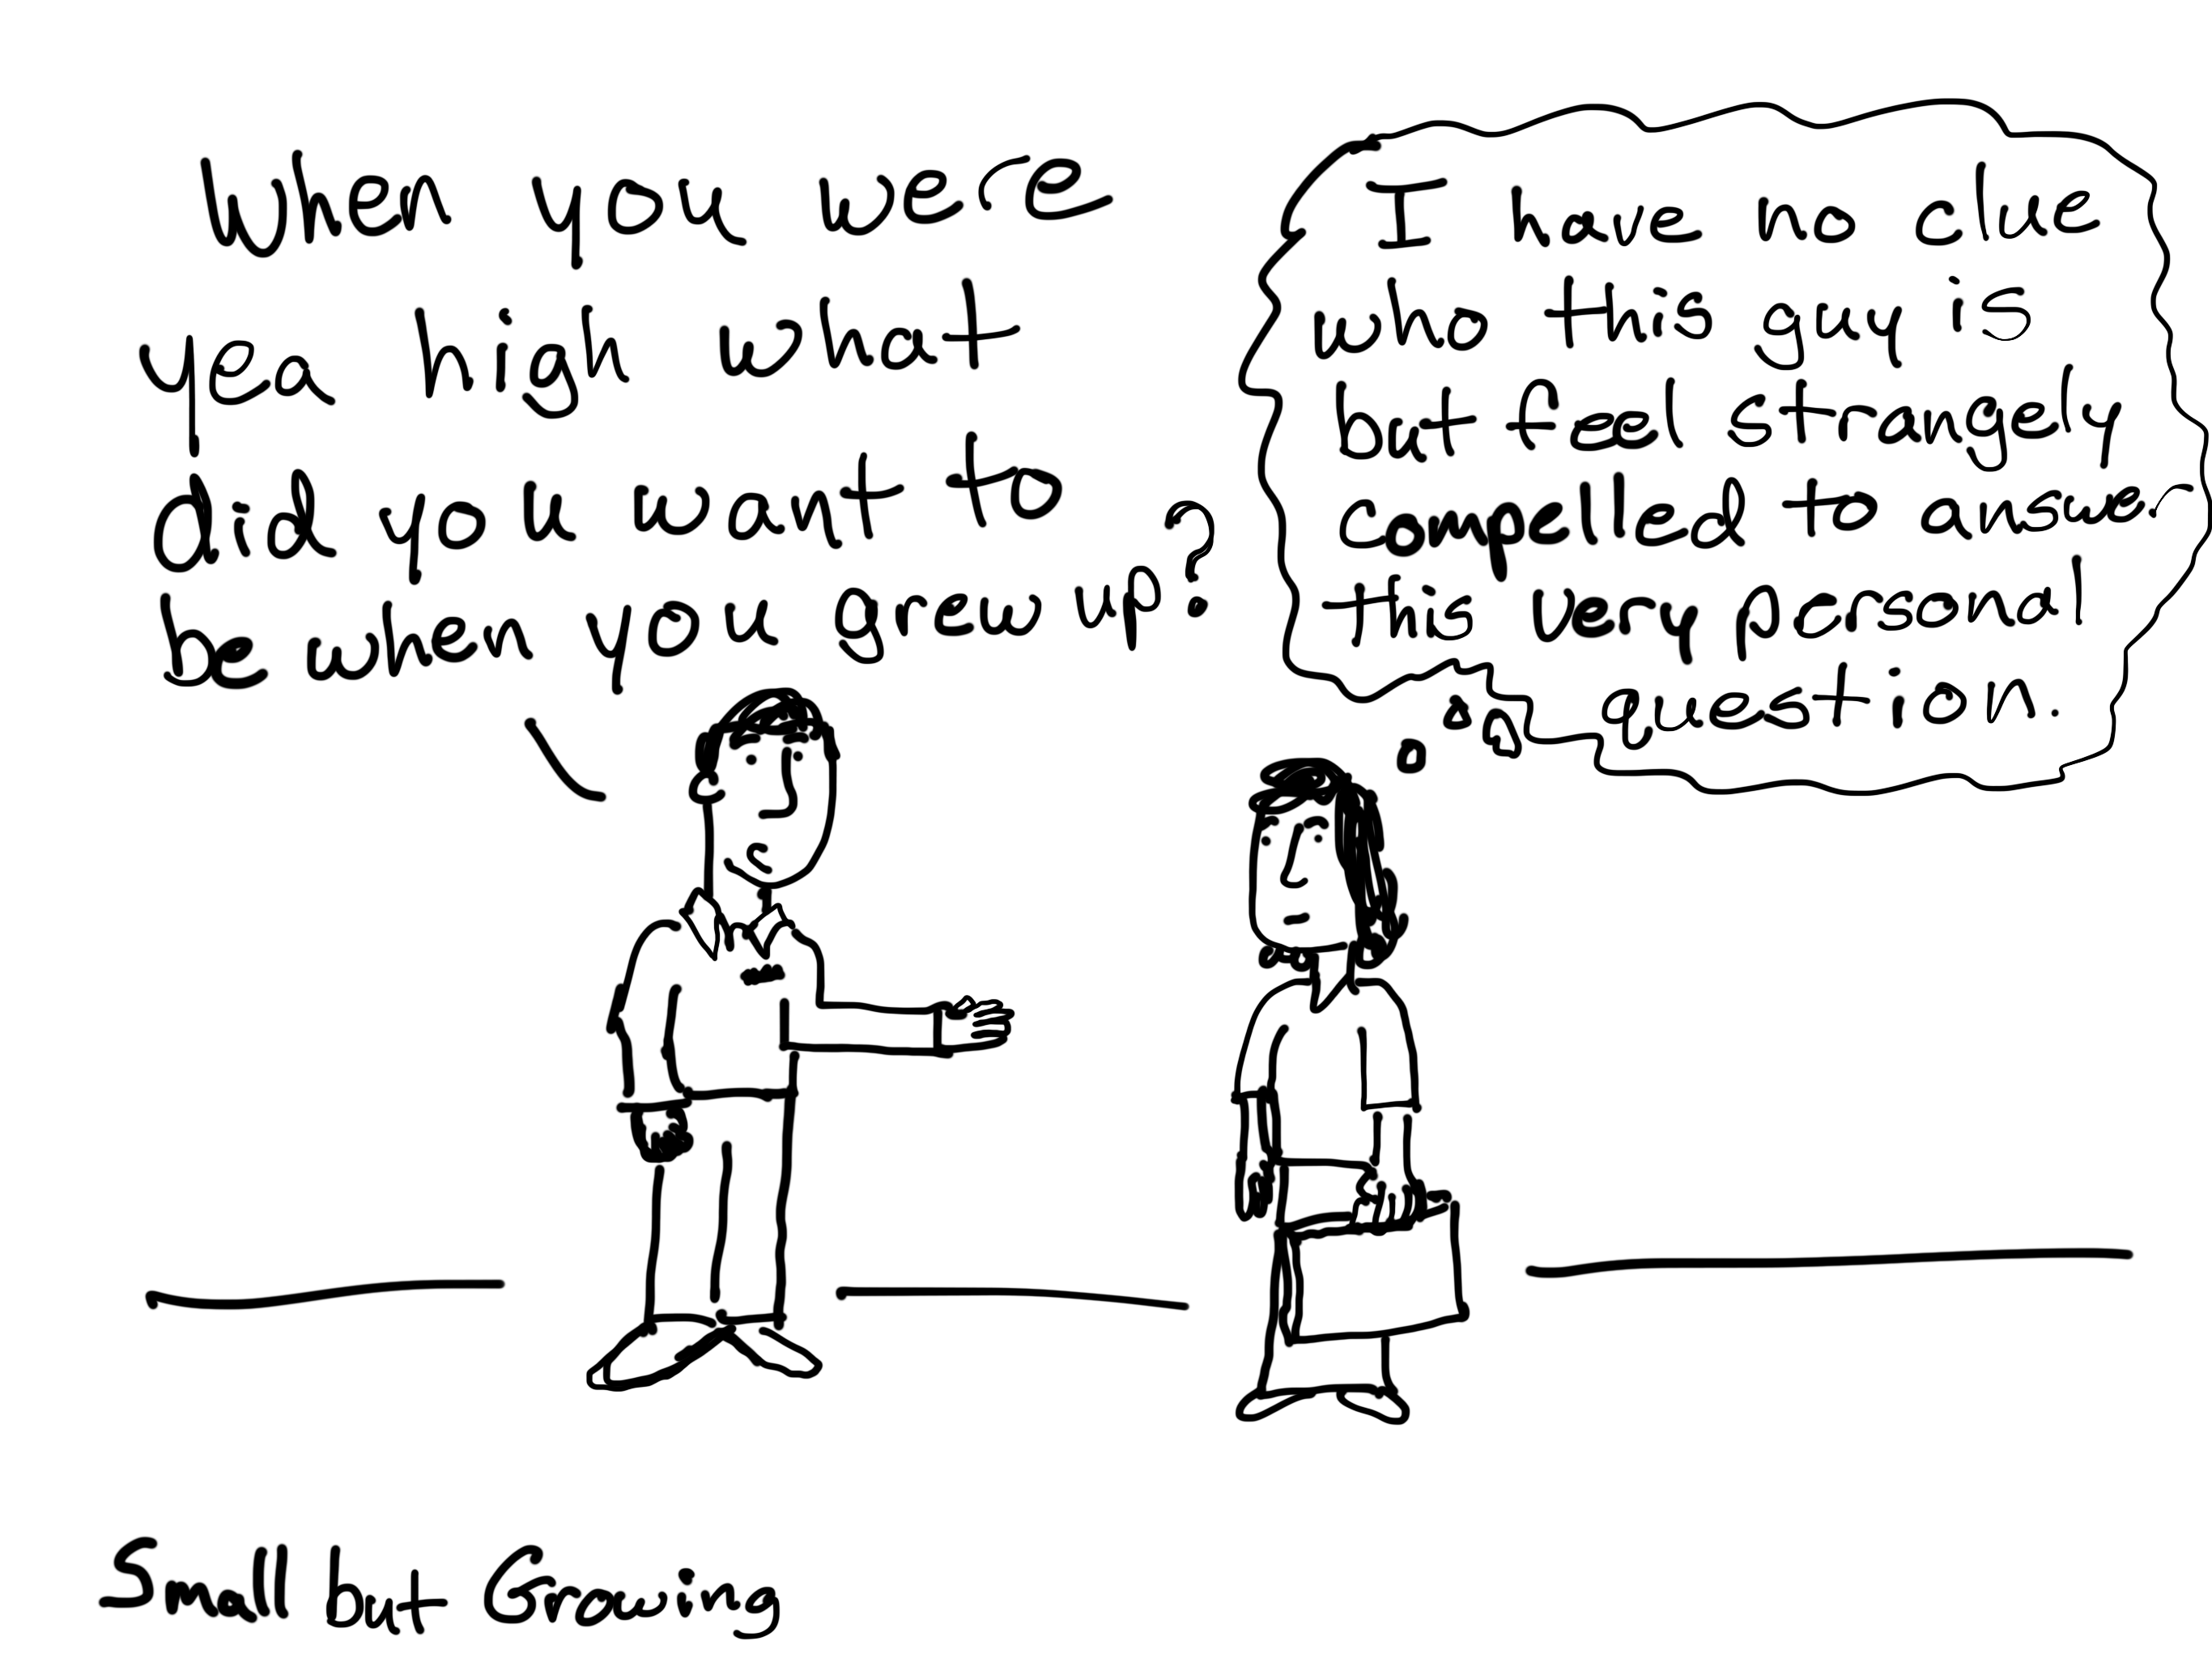 When you were yea high, what did you want to be when you grew up? Cartoon by Chris Lysy.